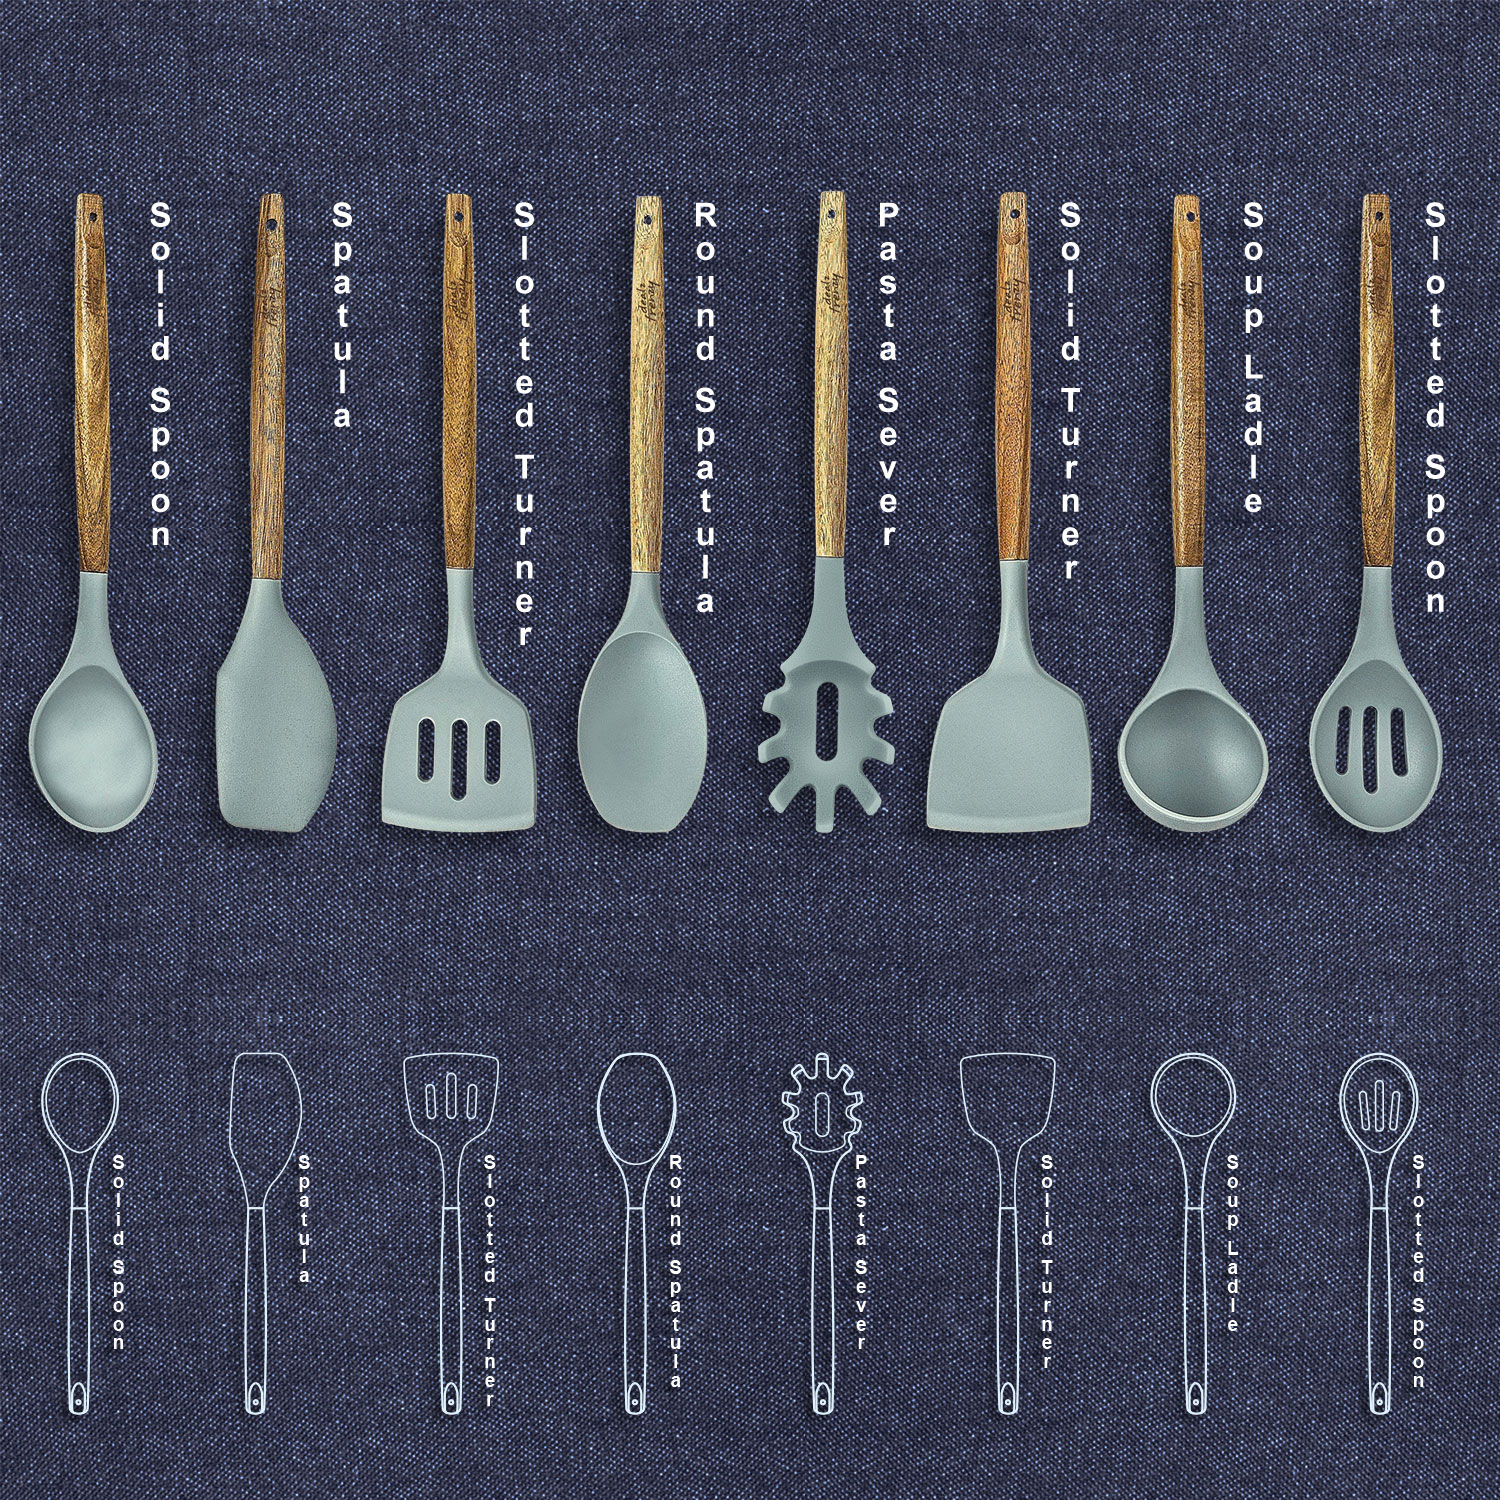 Save 20% on 8 Piece Natural Acacia Wooden Silicone Cooking Utensils Set with Amazon Coupon